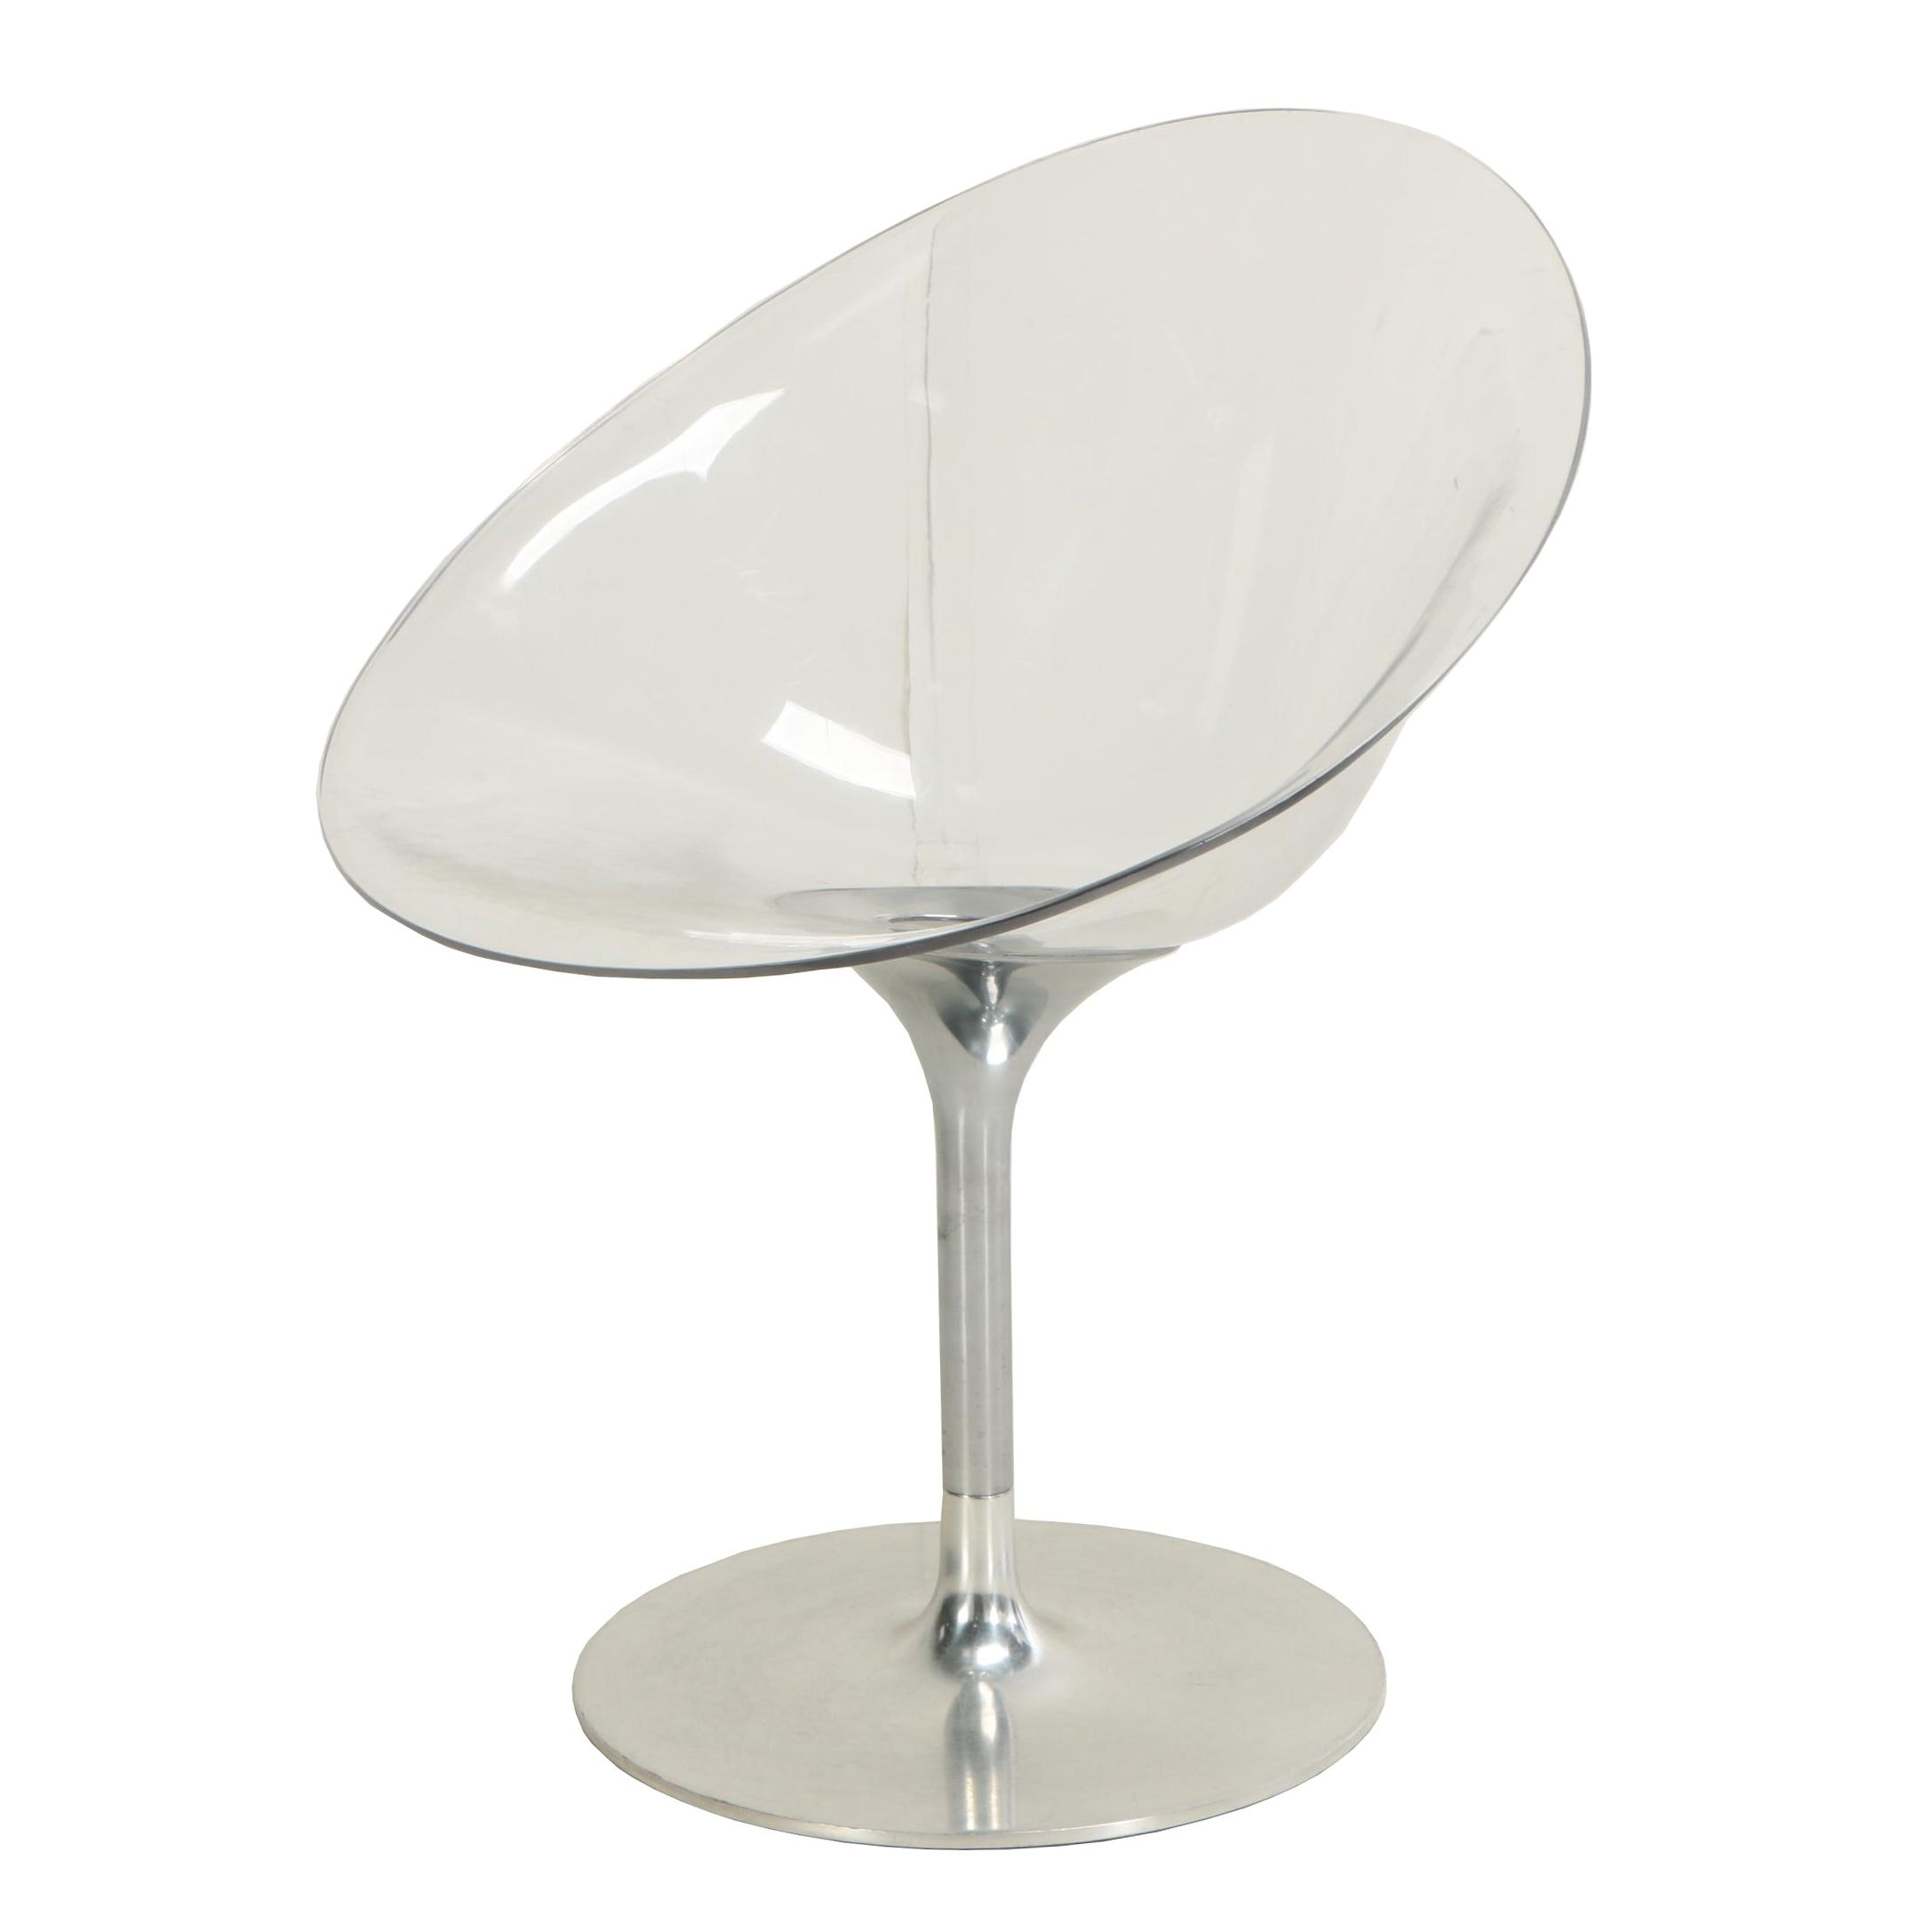 "Philippe Starck for Kartell, ""Eros"" Aluminum and Acrylic Swivel Chair"